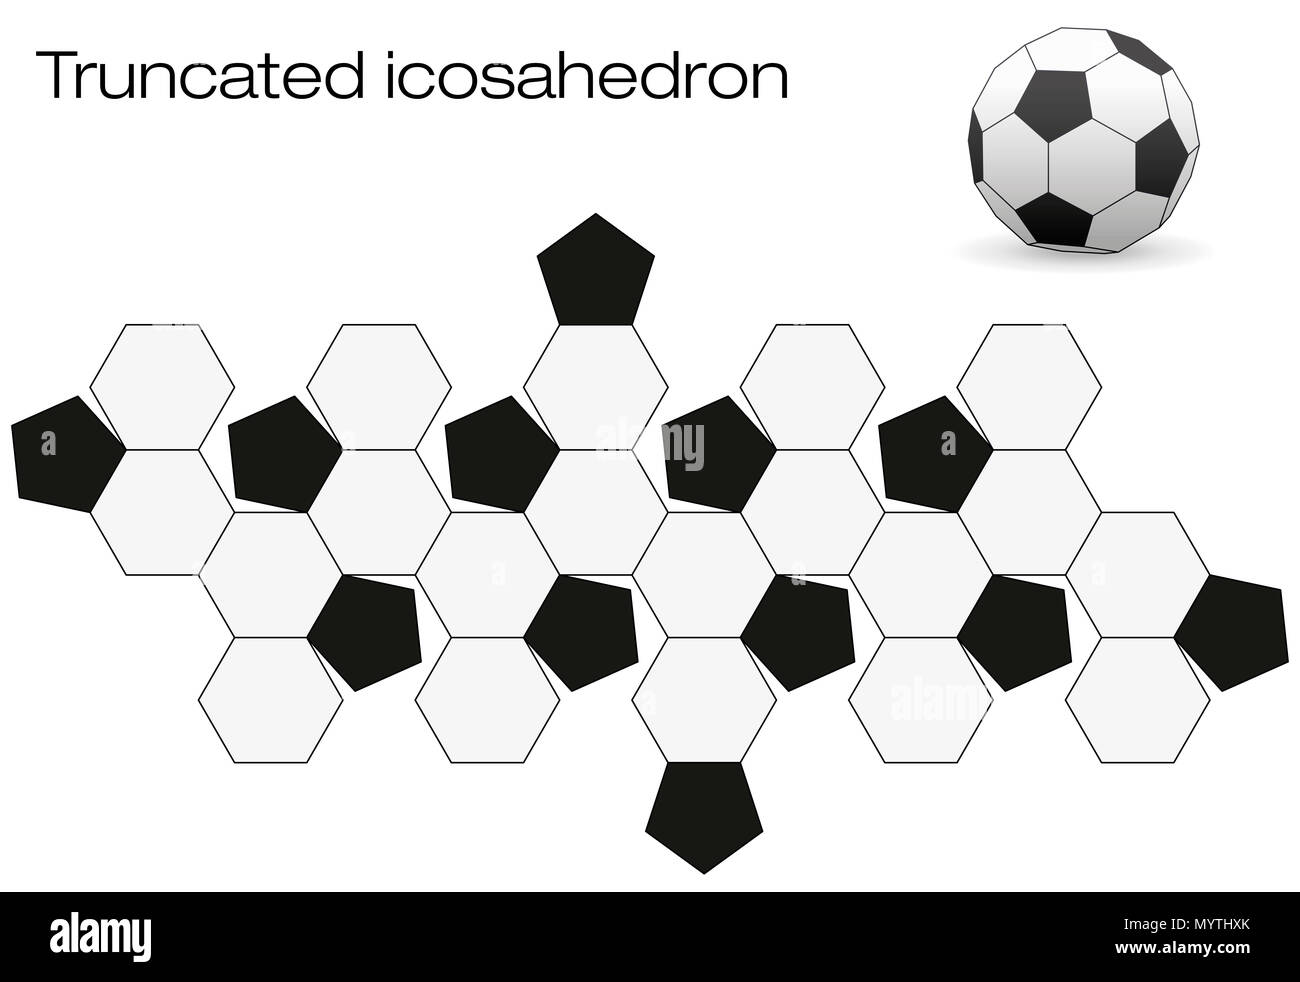 Unfolded soccer ball surface. Geometric polyhedron called truncated icosahedron, an Archimedean solid with twelve black and twenty white faces. - Stock Image